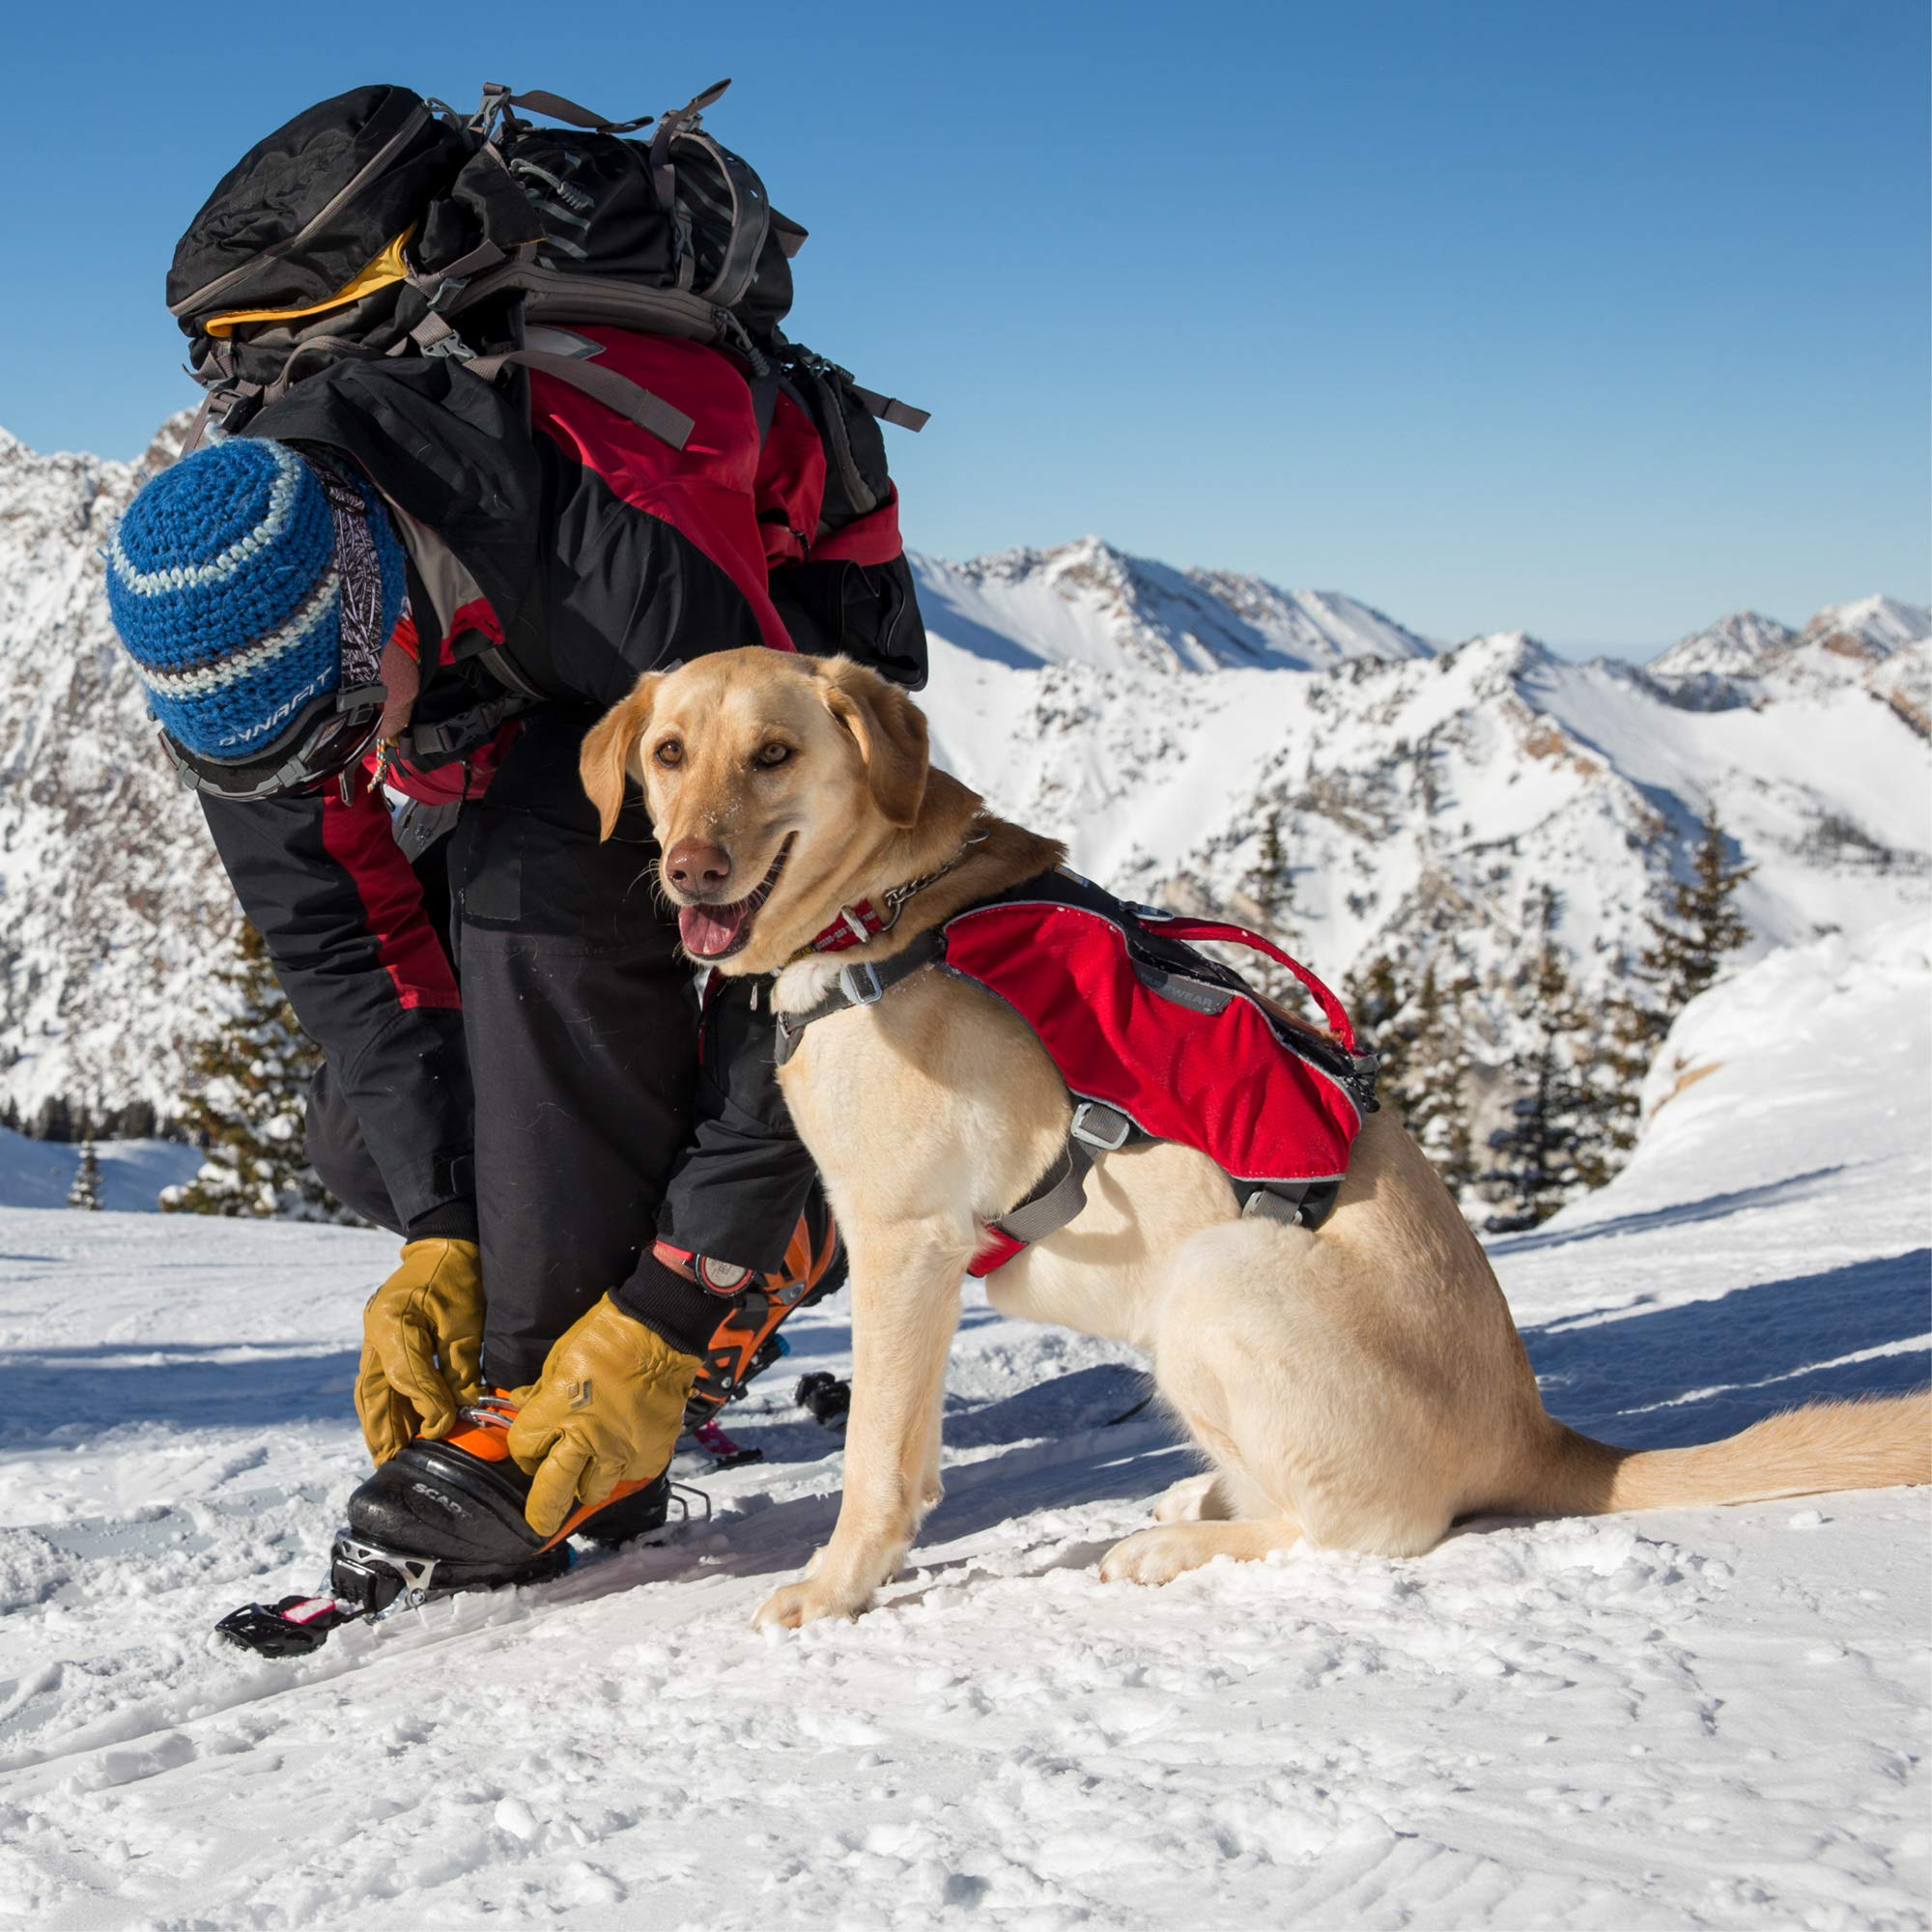 RUFFWEAR - Web Master Pro Dog Harness, Search and Rescue, Service Dogs, Snowboarding, Skiing, Everyday Wear, Red Currant, Small by RUFFWEAR (Image #9)